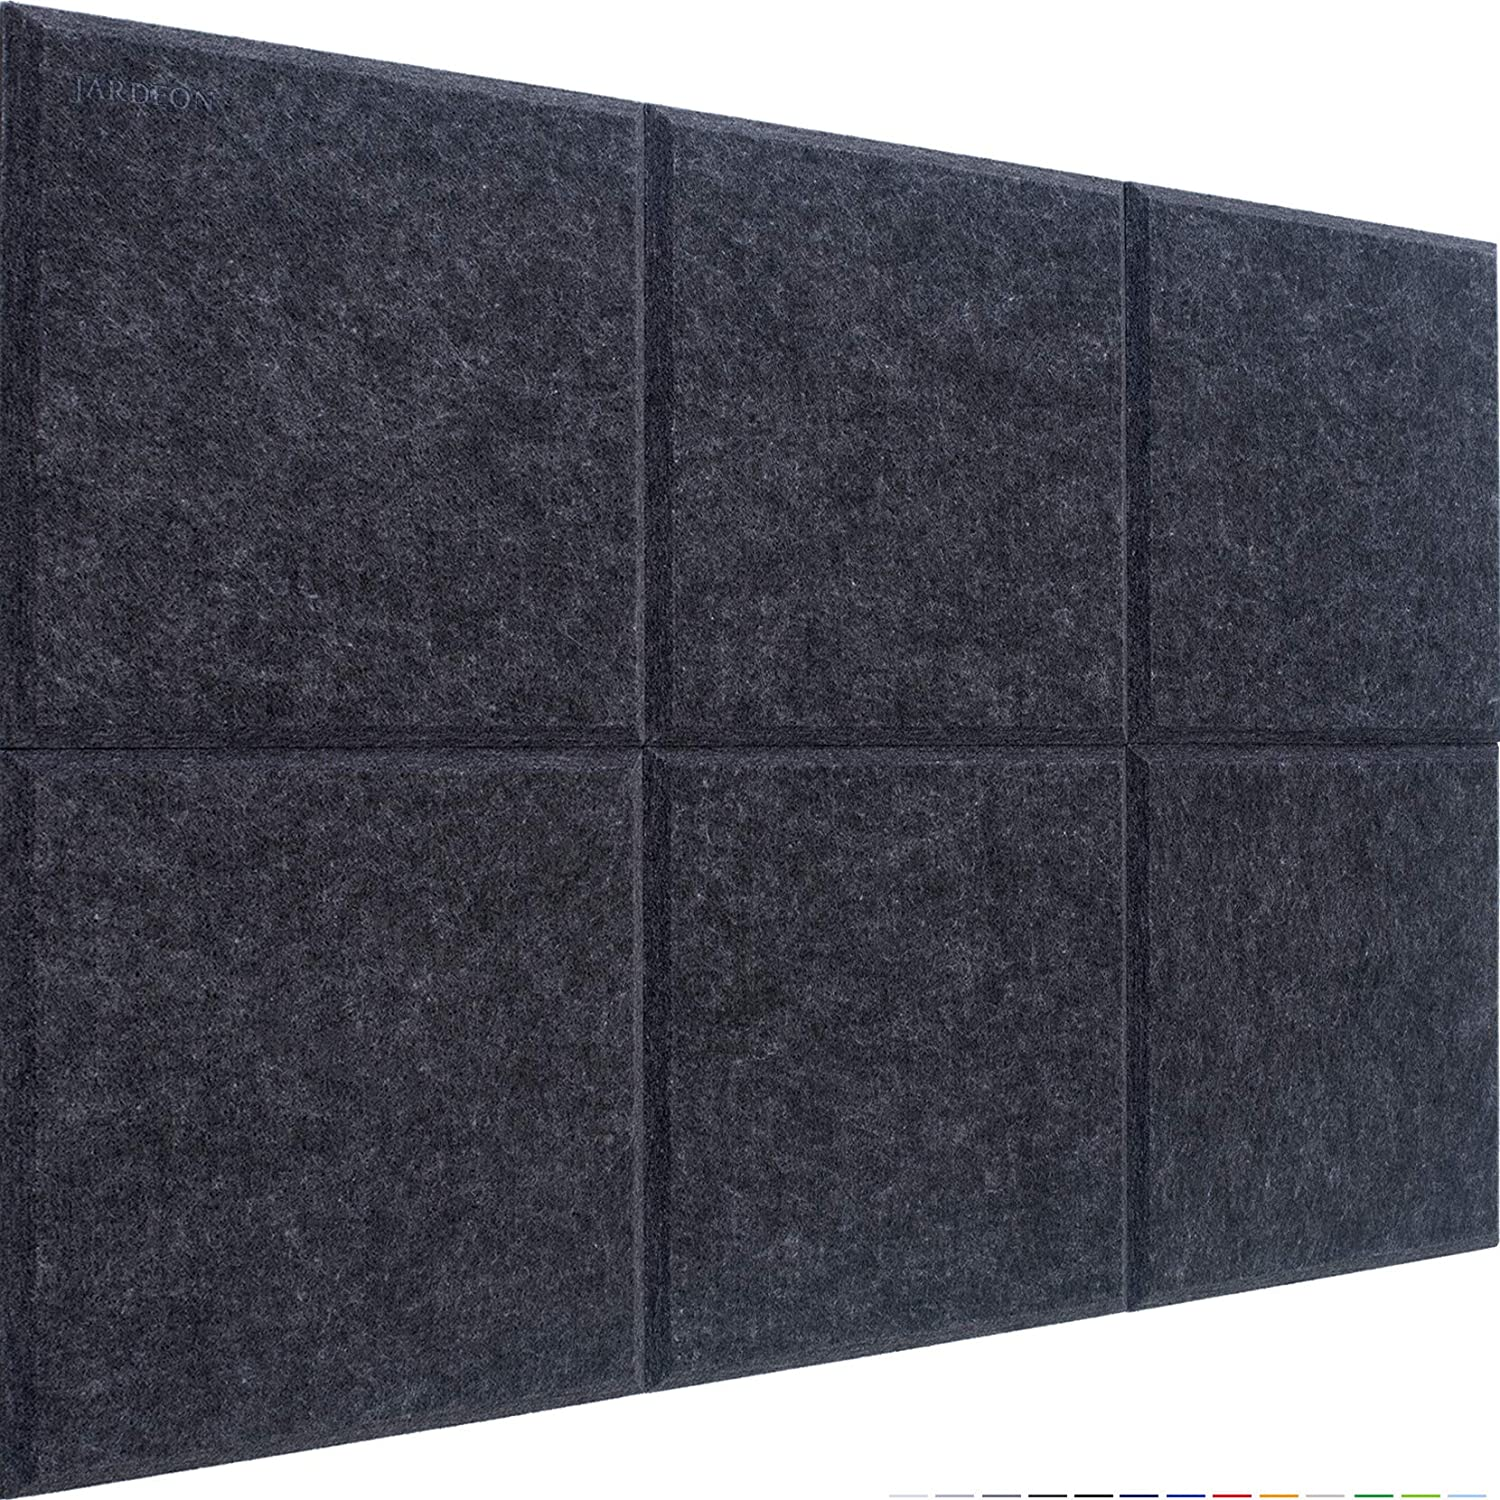 JARDEON Acoustic Panels Charcoal Polyester Sound Proof Padding Beveled Edge Tiles for Echo Bass Insulation 12 X 12 X 0.4, 6 Pack